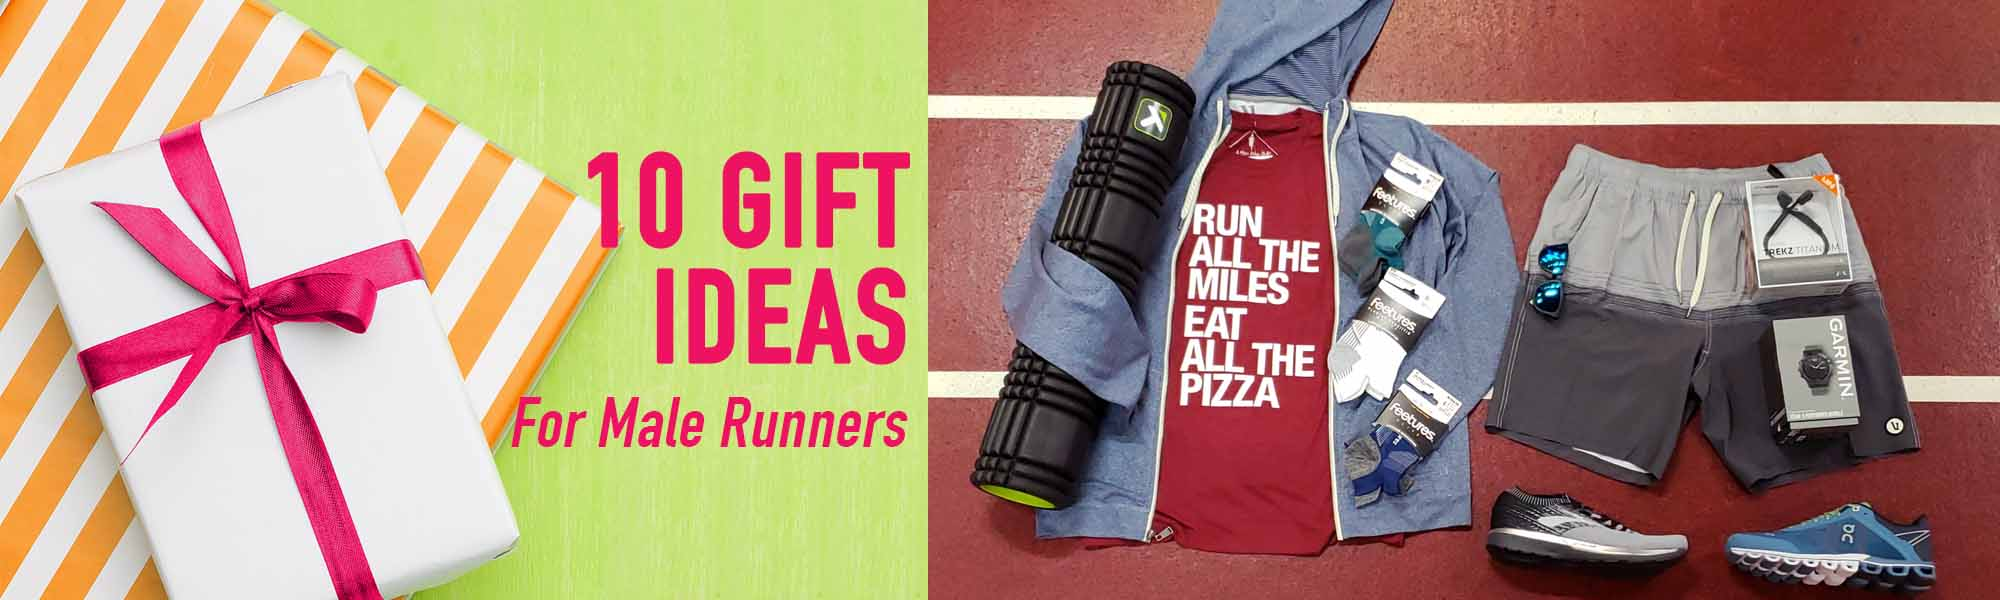 The Ultimate Gift List for Male Runners